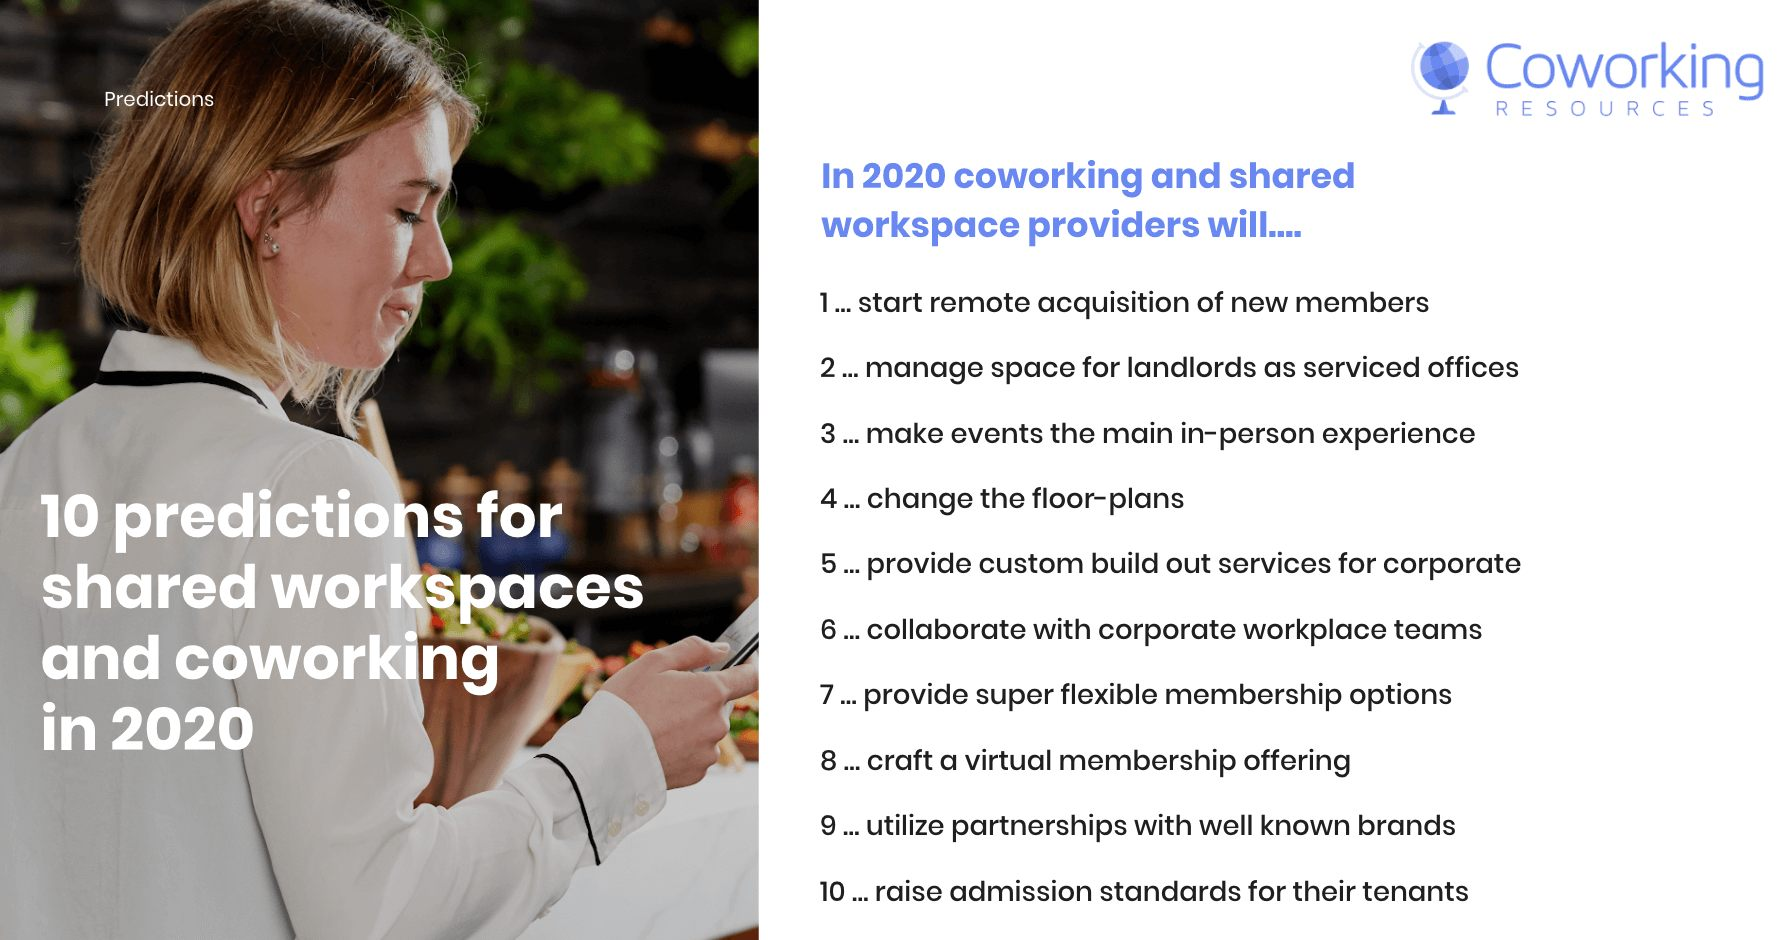 Coworking Predictions 2020